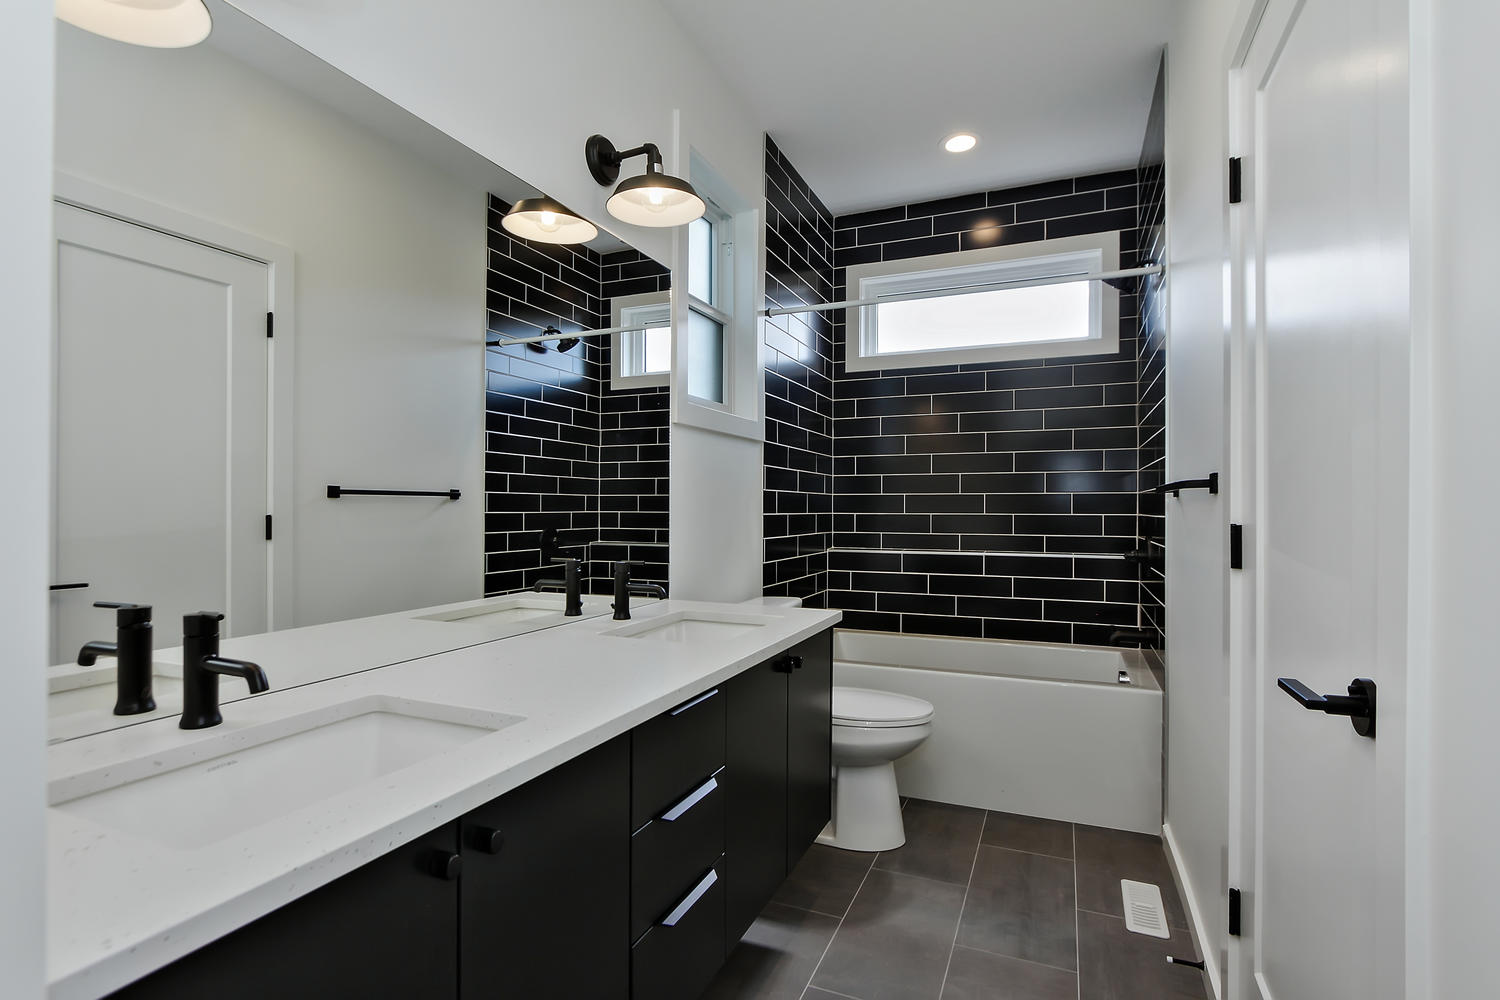 9625 80 Ave NW Edmonton AB T6C-large-046-25-Bathroom-1500x1000-72dpi.jpg